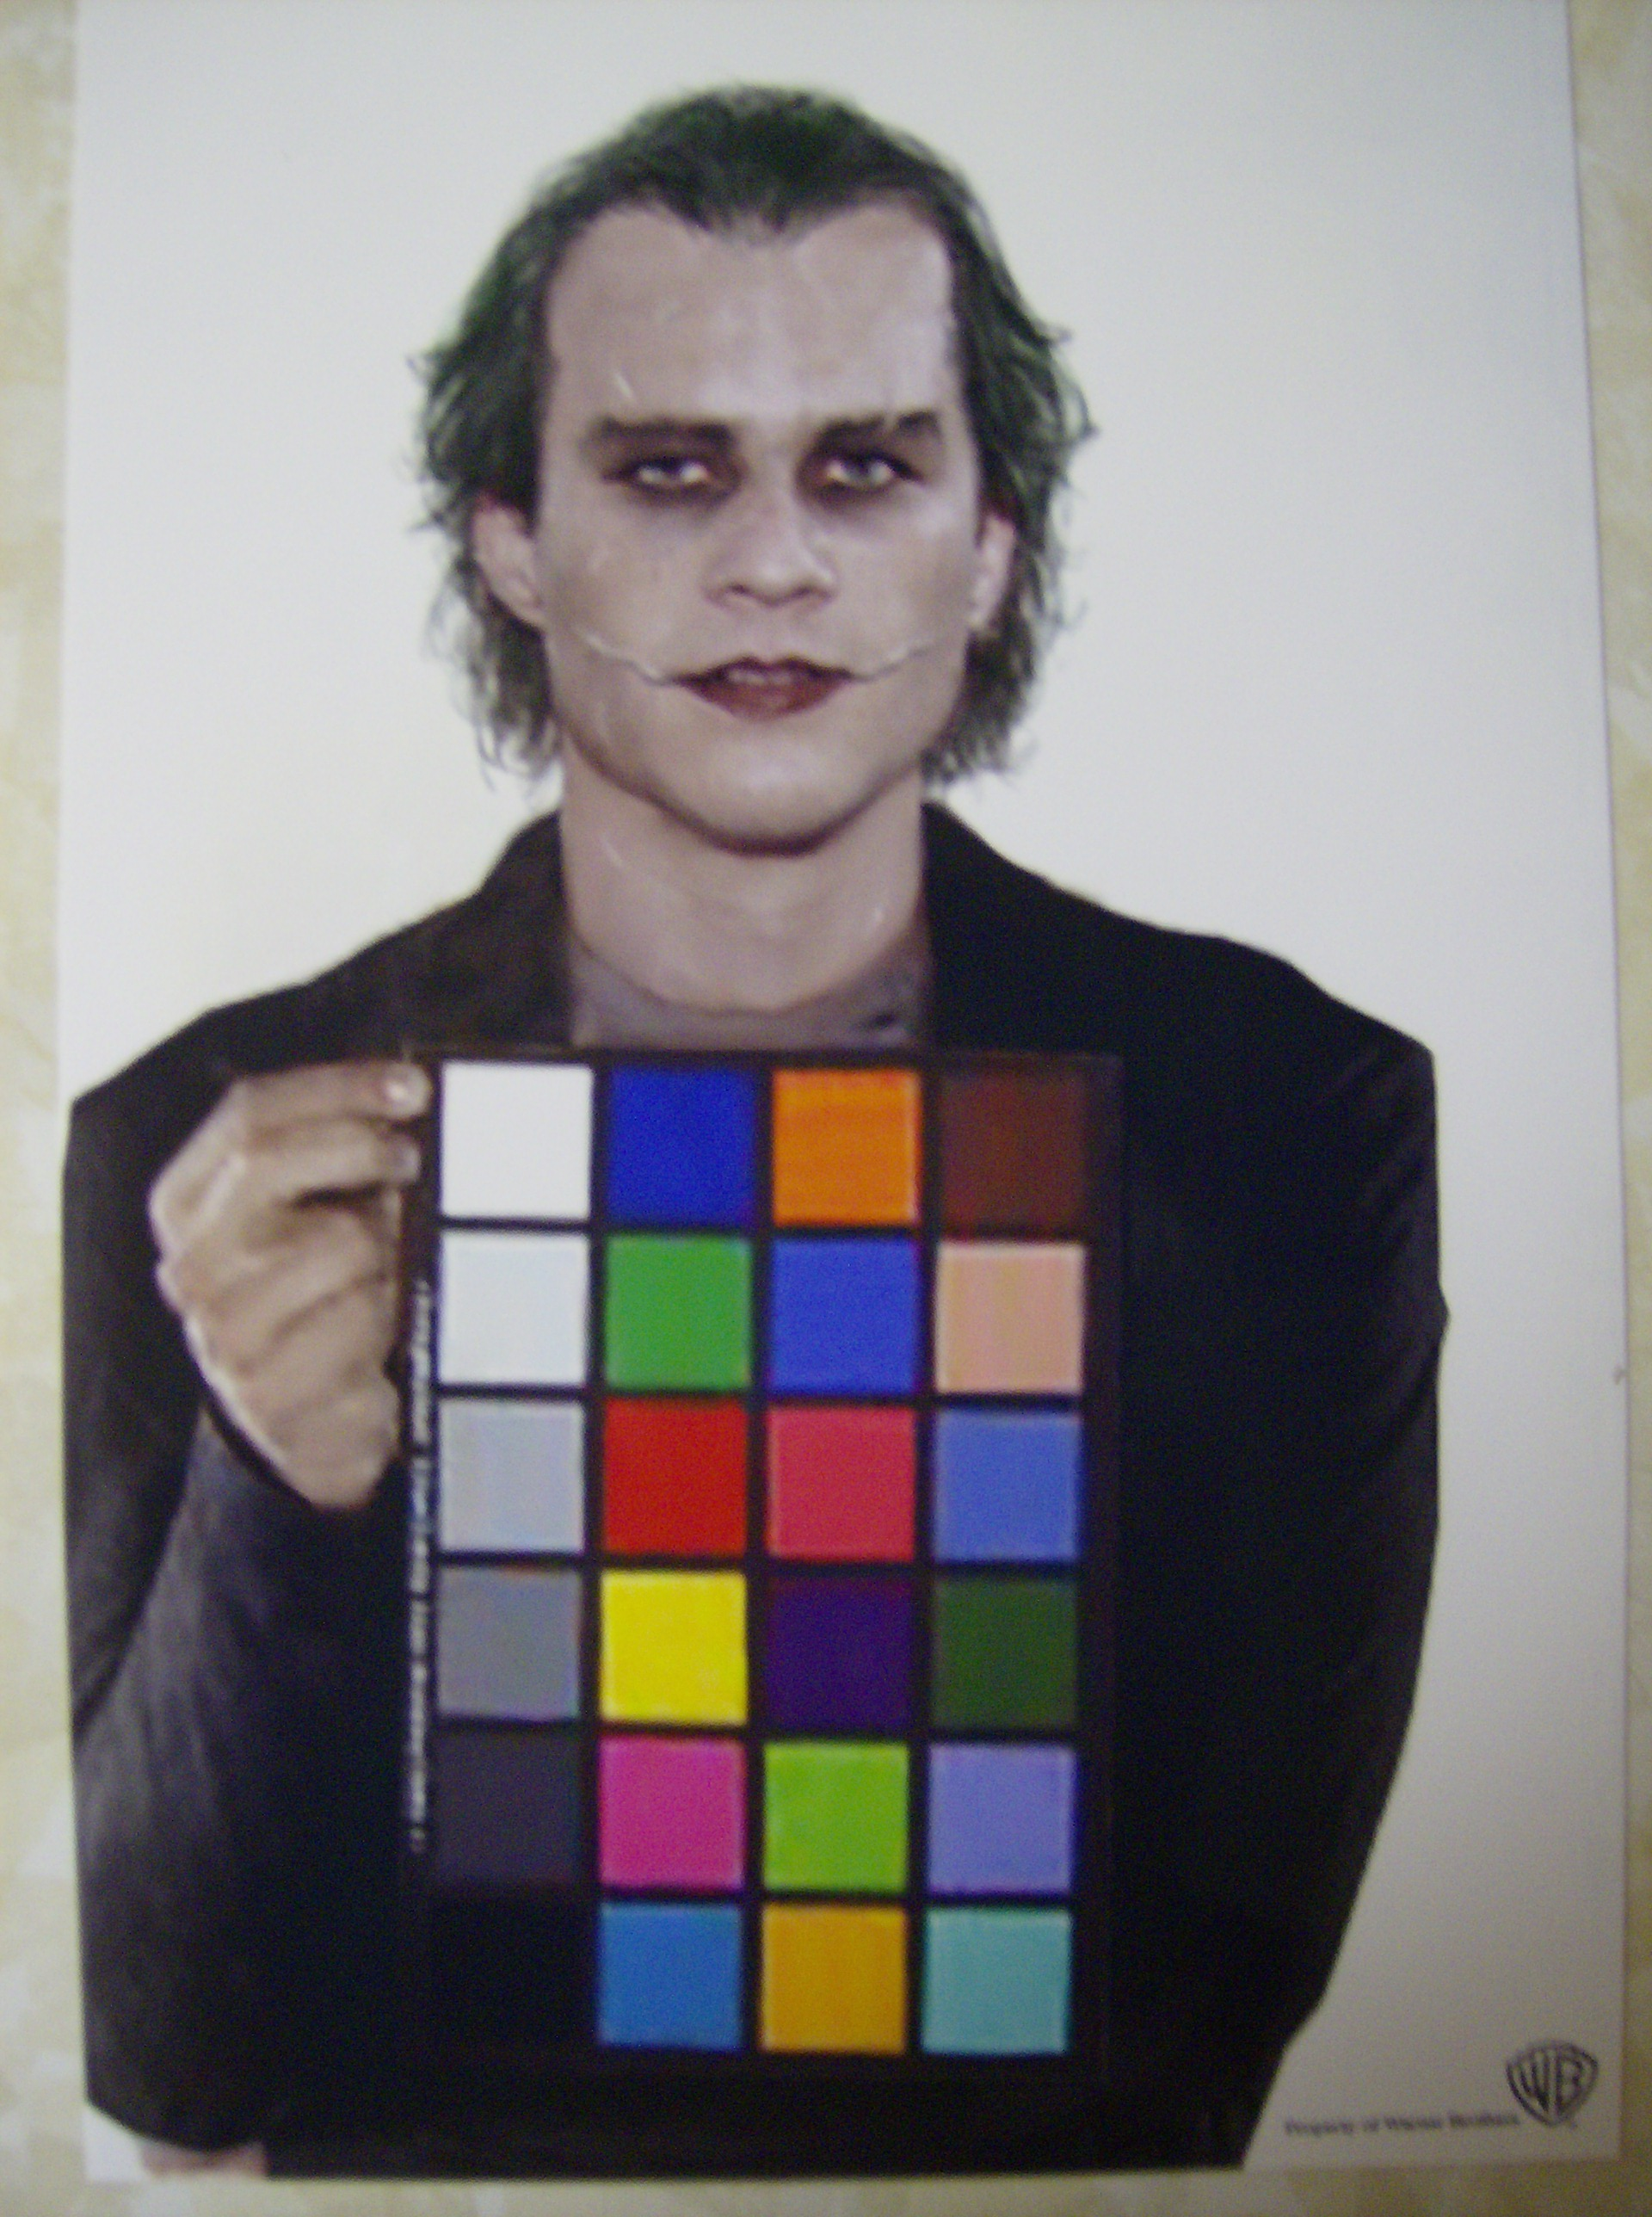 Let S Try This Again Is This The Joker I Guess Not